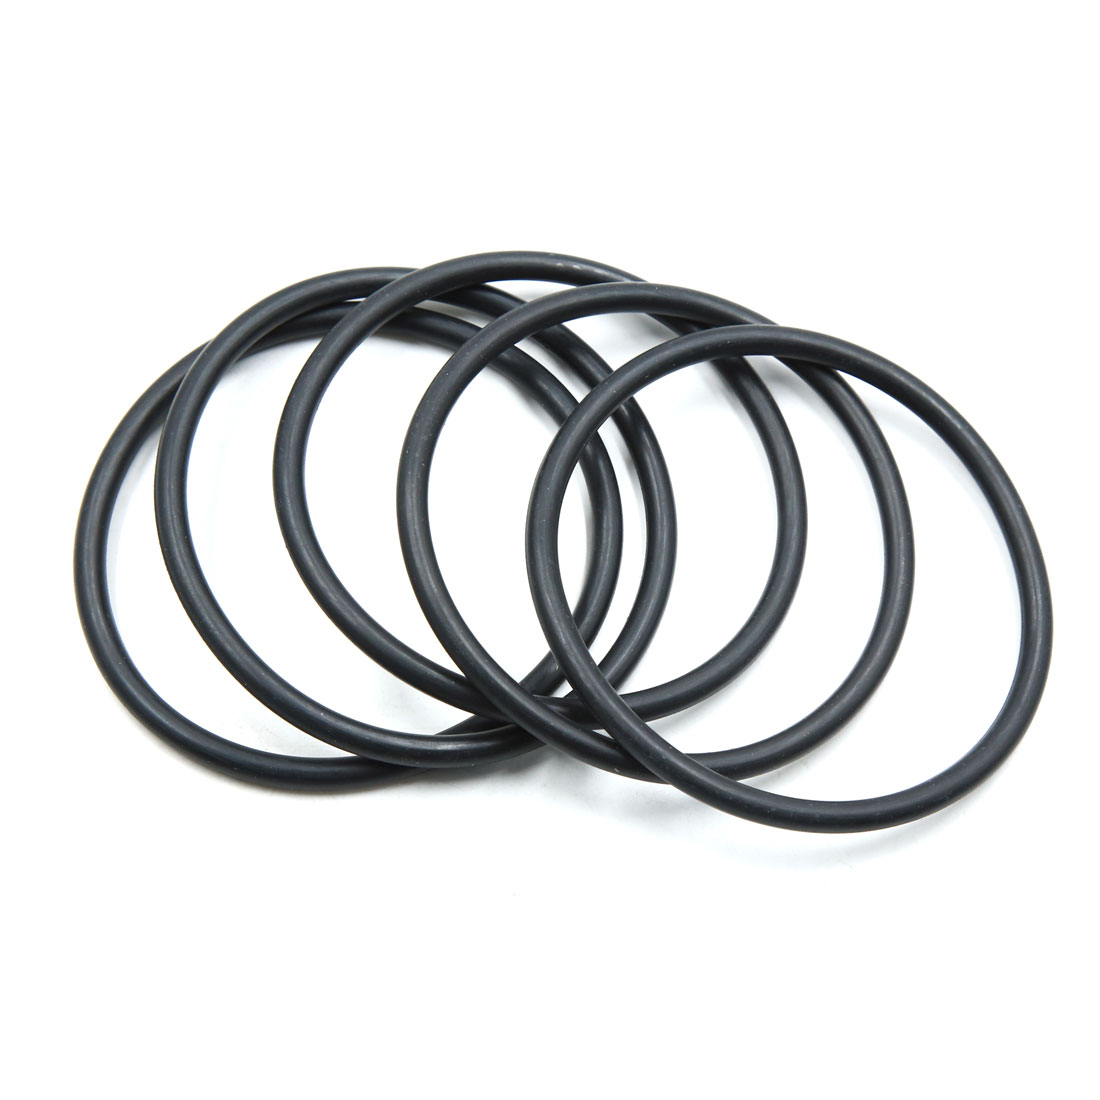 5pcs Black NBR O-Ring Seal Gasket Washer for Automotive Car 80mm x 5.3mm